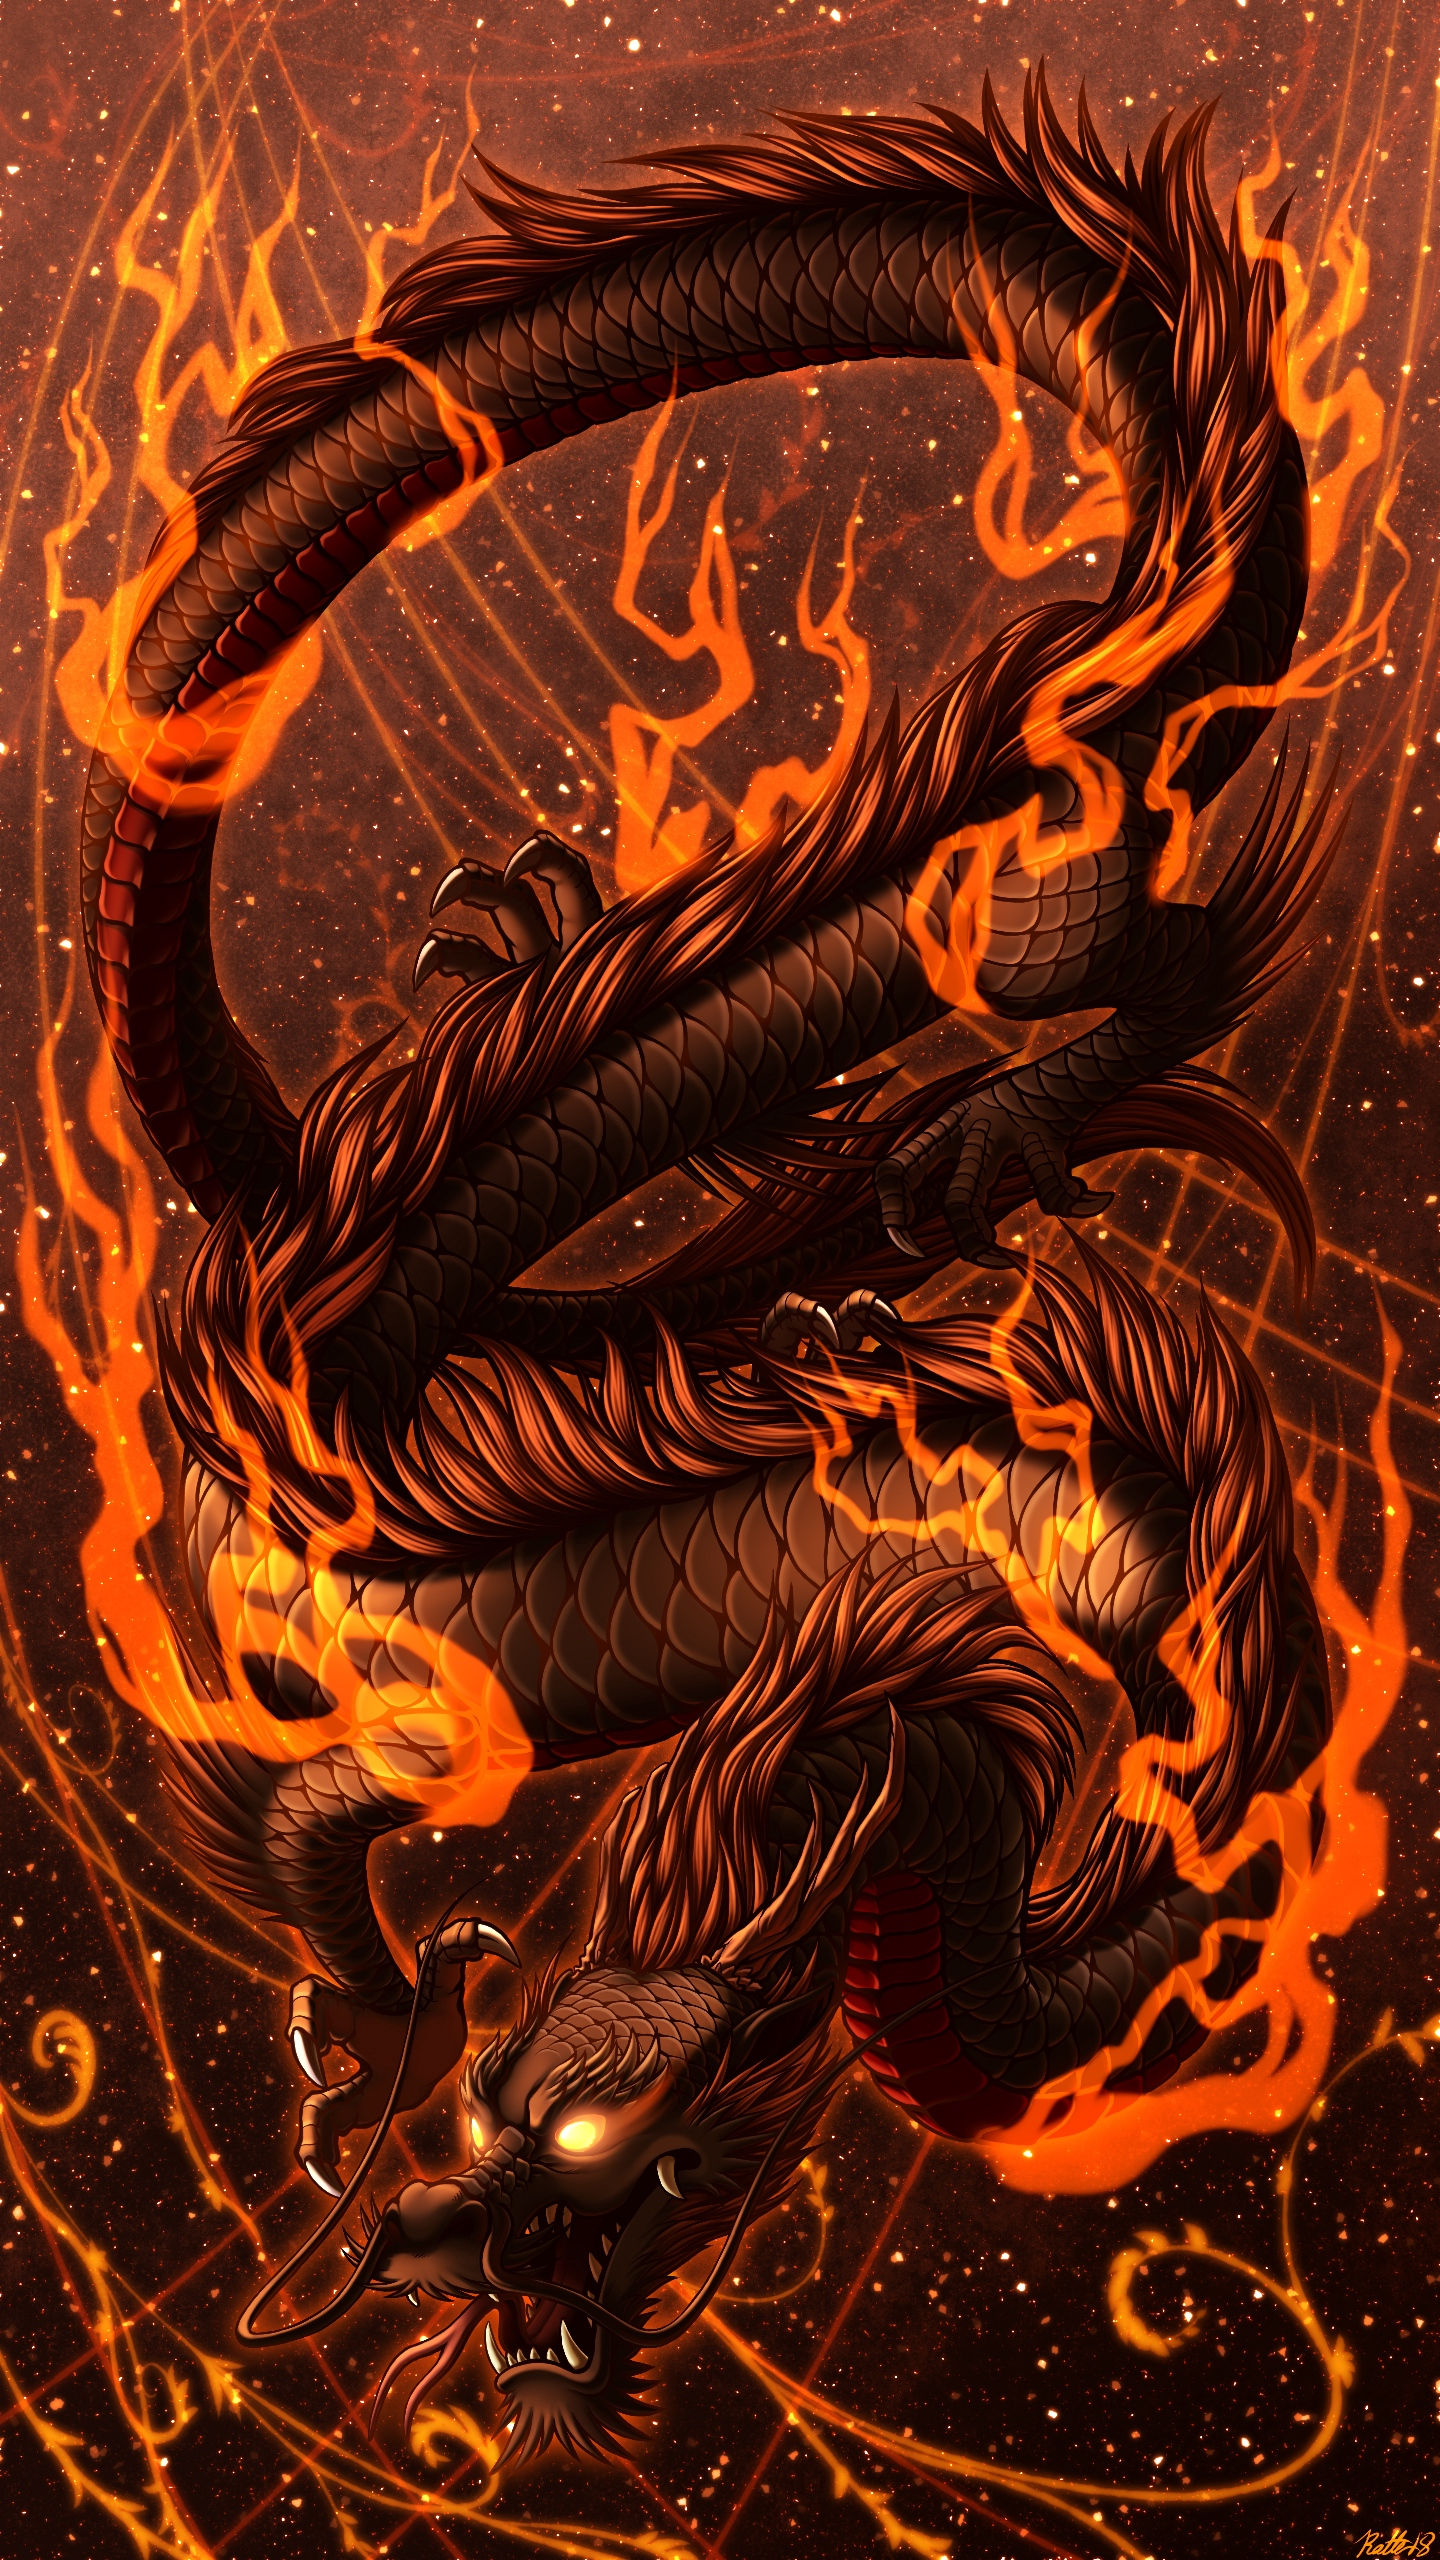 Best Dragon wallpapers for phone screen